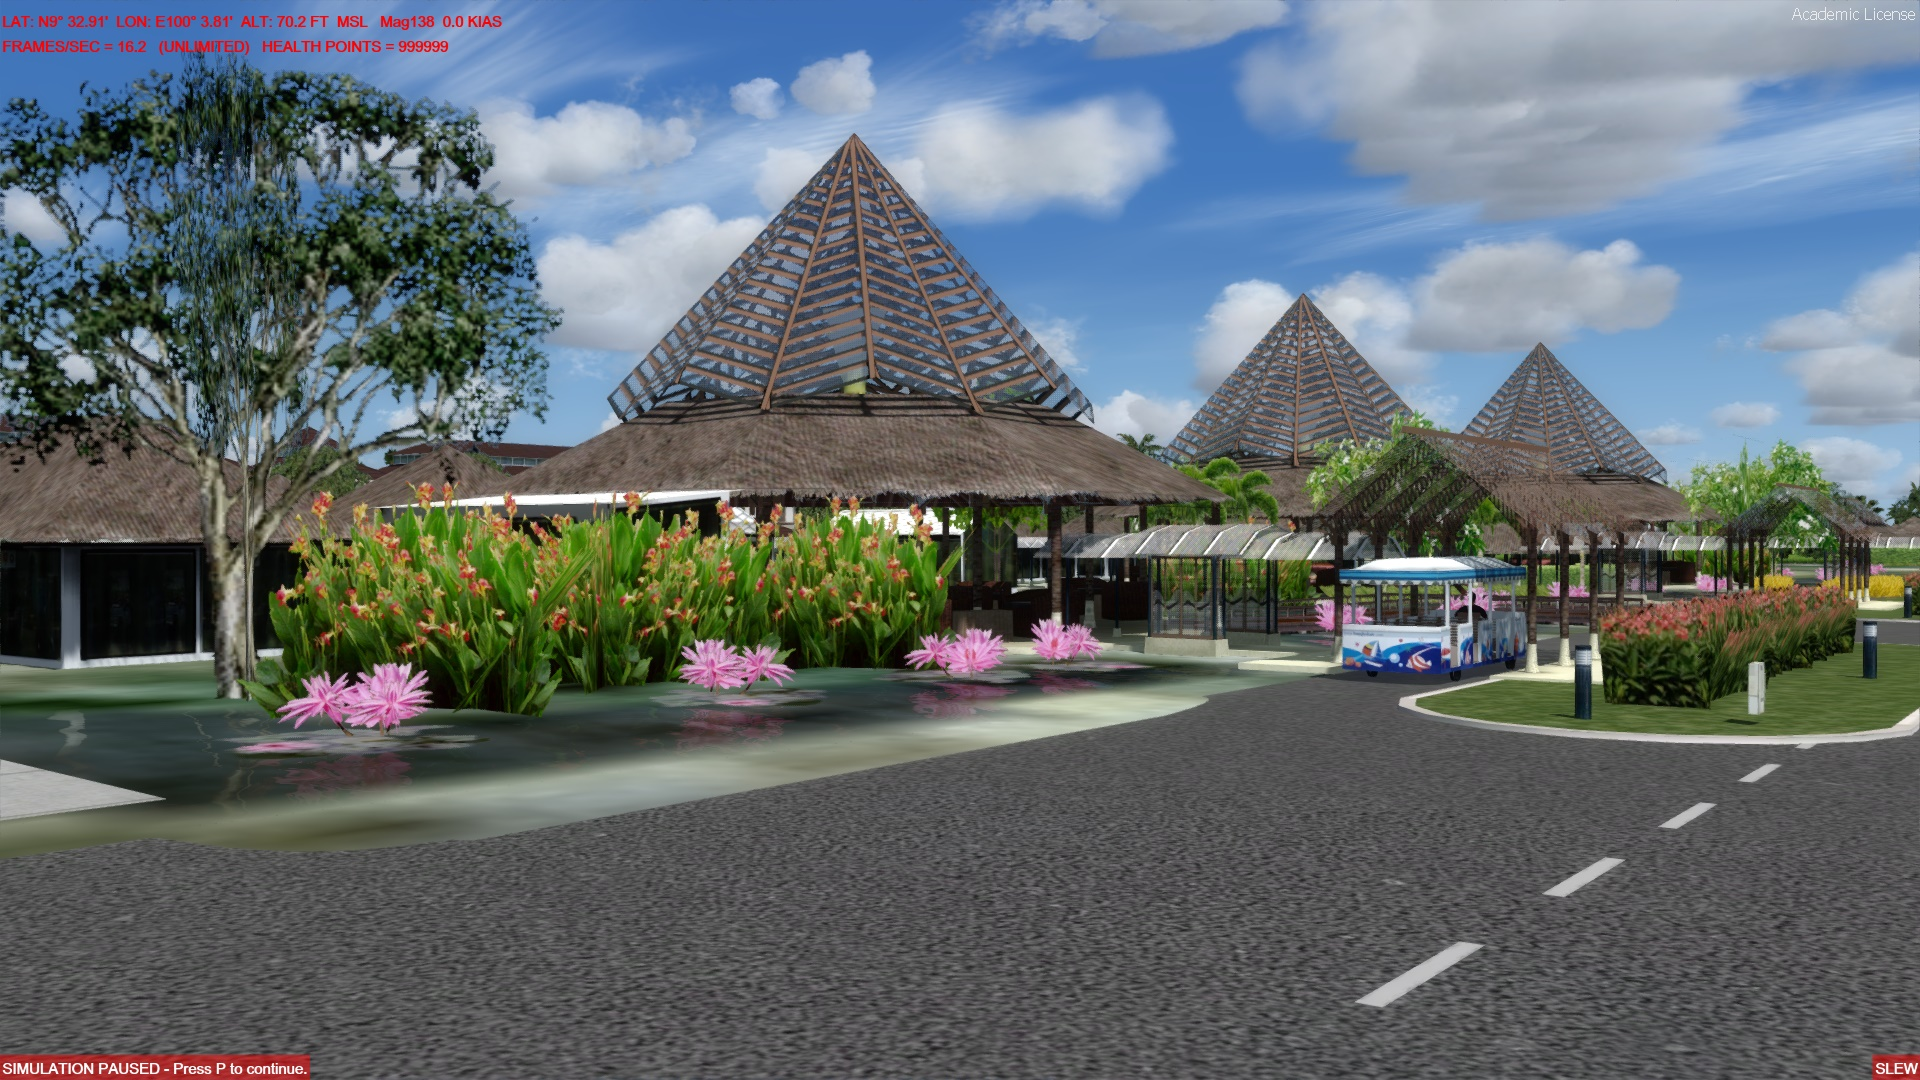 A_A SCENERIES - SAMUI INTERNATIONAL AIRPORT 2020 FSX P3D